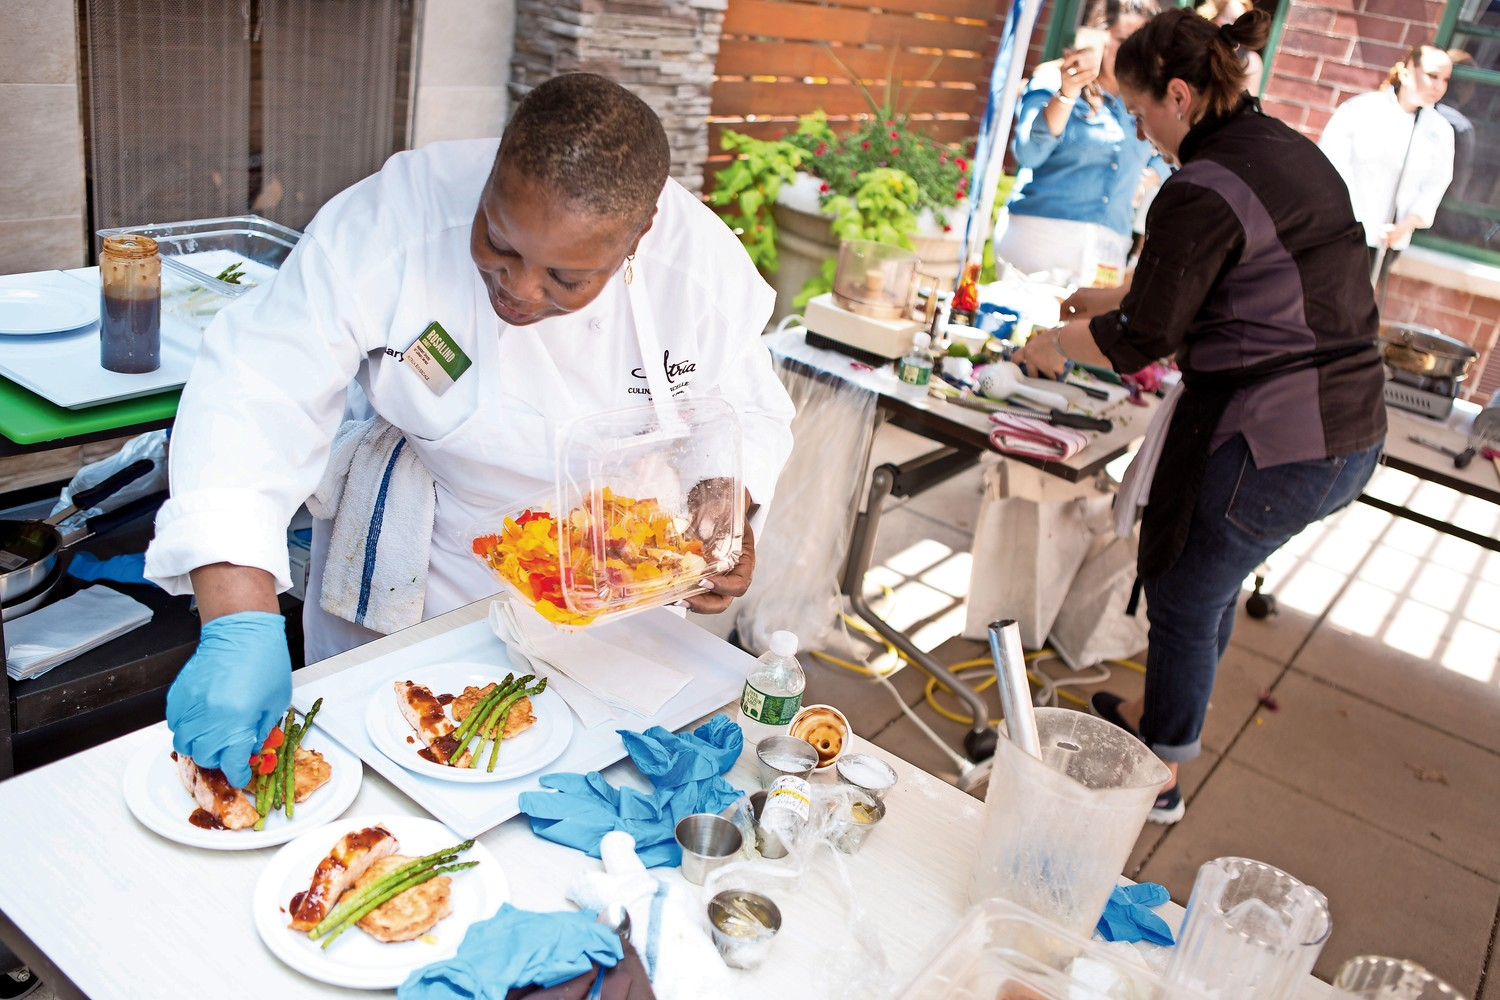 Atria chef Rosalind Craft, left garnishes a plate of corn fitters, teriyaki glazed salmon and asparagus while food blogger Rachel Berger, right, slices onions for her dish at Atria Riverdale's Chef Showdown last year. The cooking competition returns to Atria for its third installment on July 17.